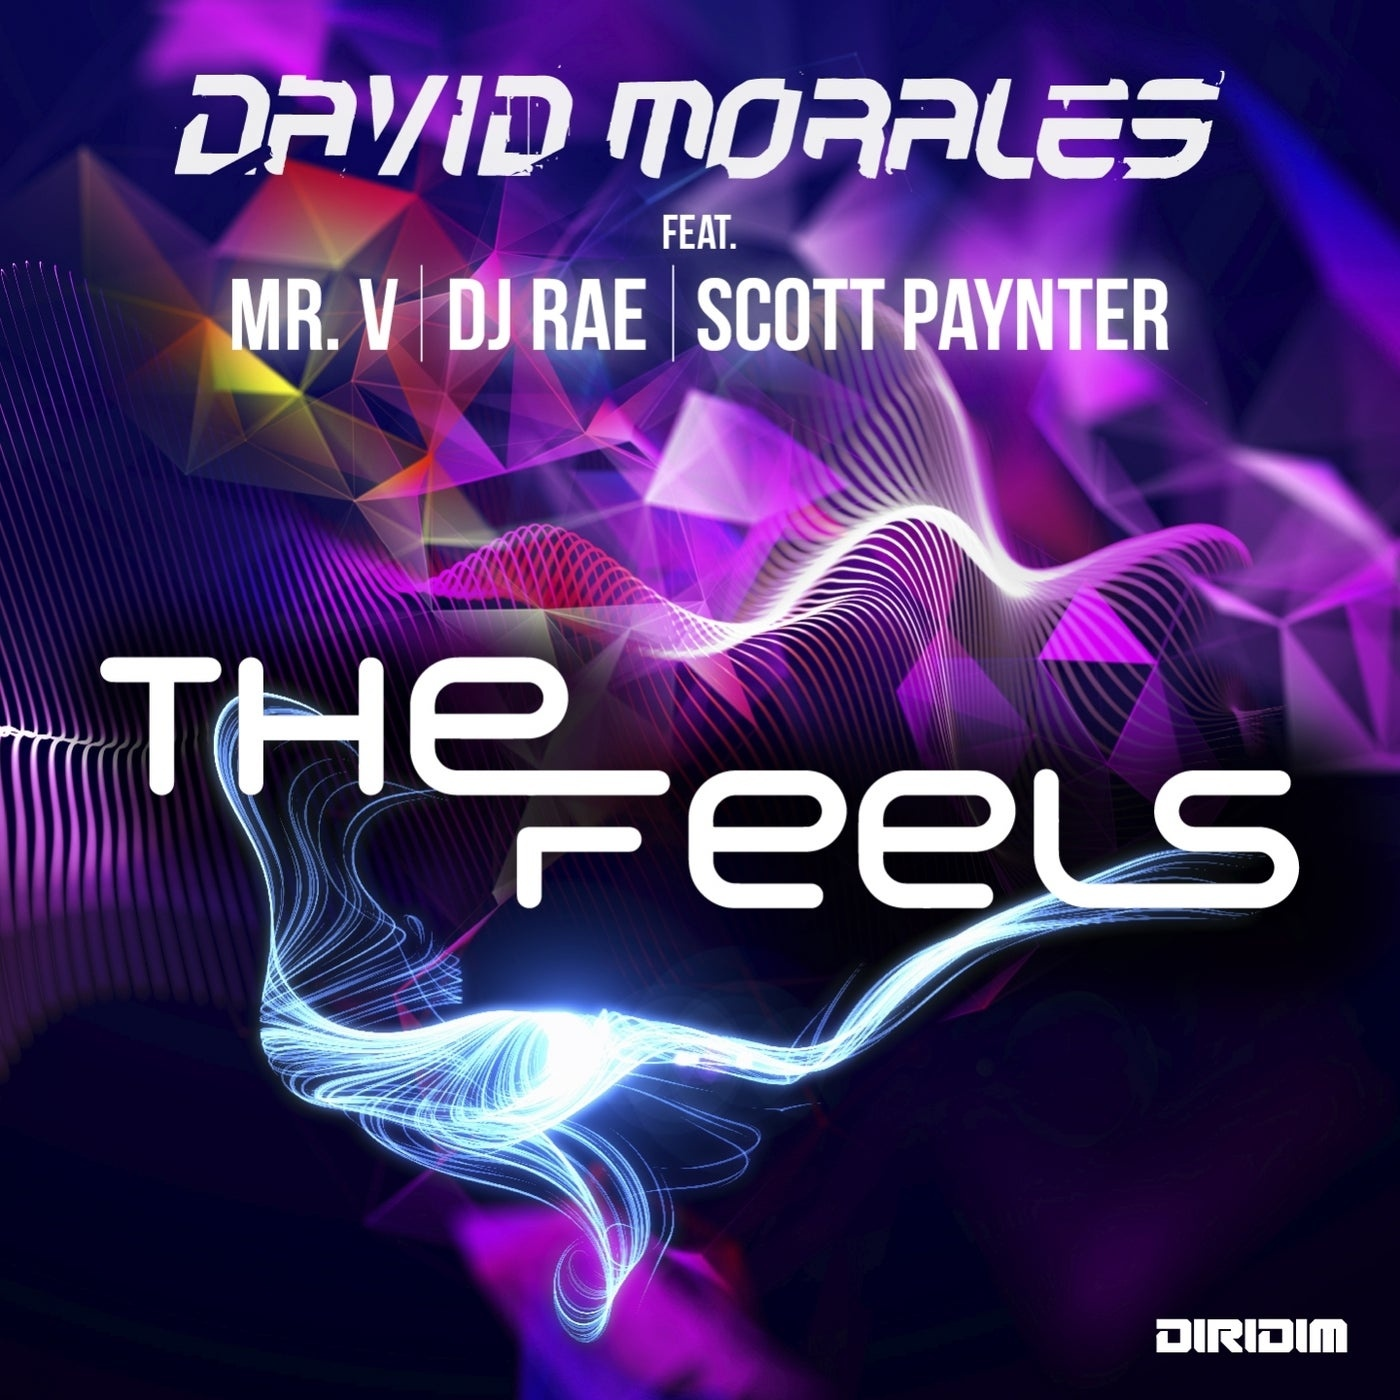 Cover - David Morales - The Feels feat. Mr. V, DJ Rae, Scott Paynter (Extended Mix)